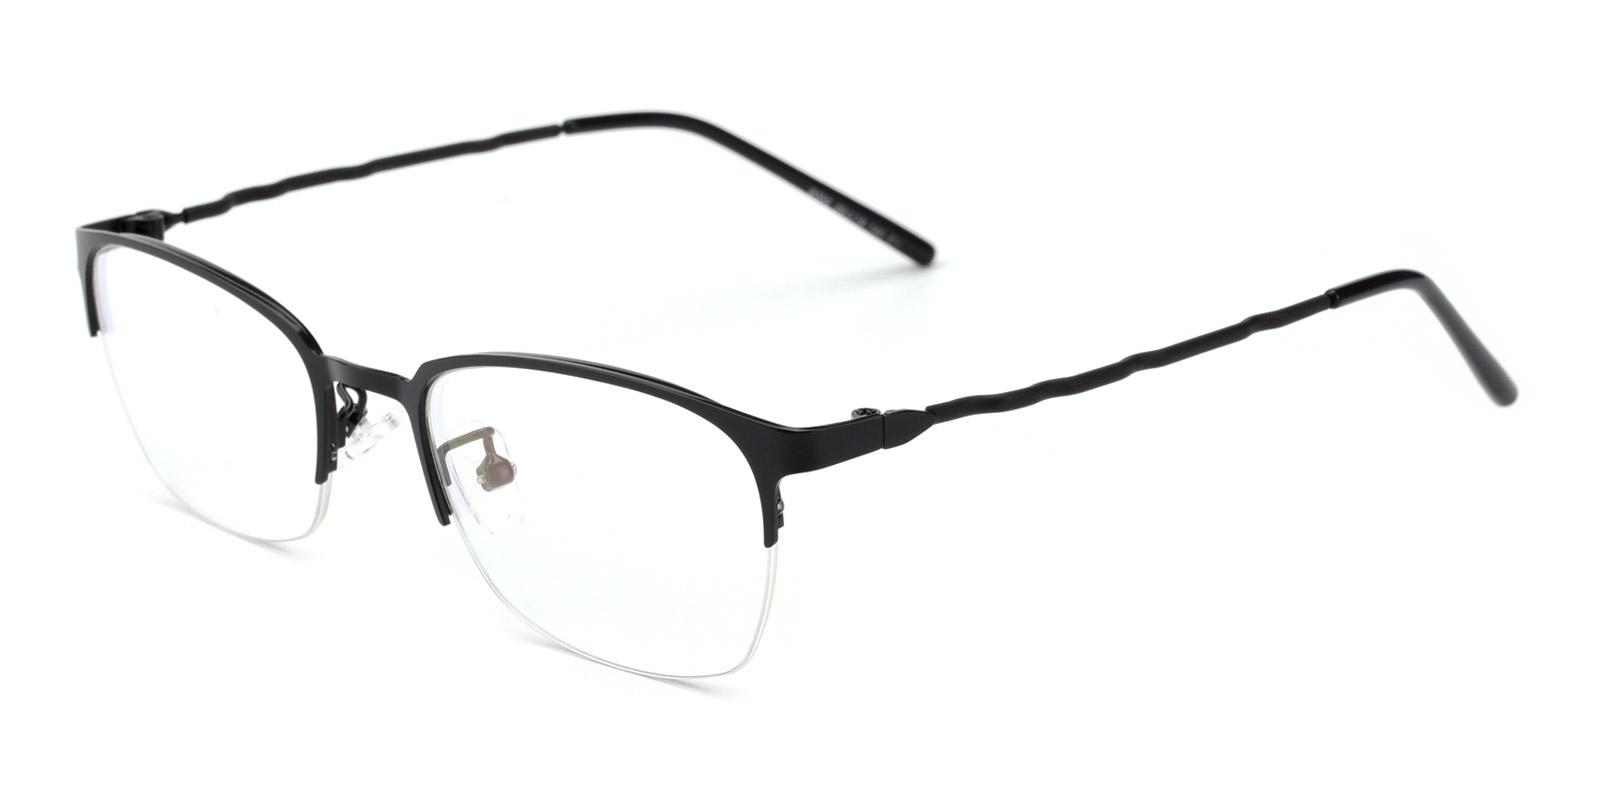 Wavain-Black-Rectangle-Metal-Eyeglasses-additional1